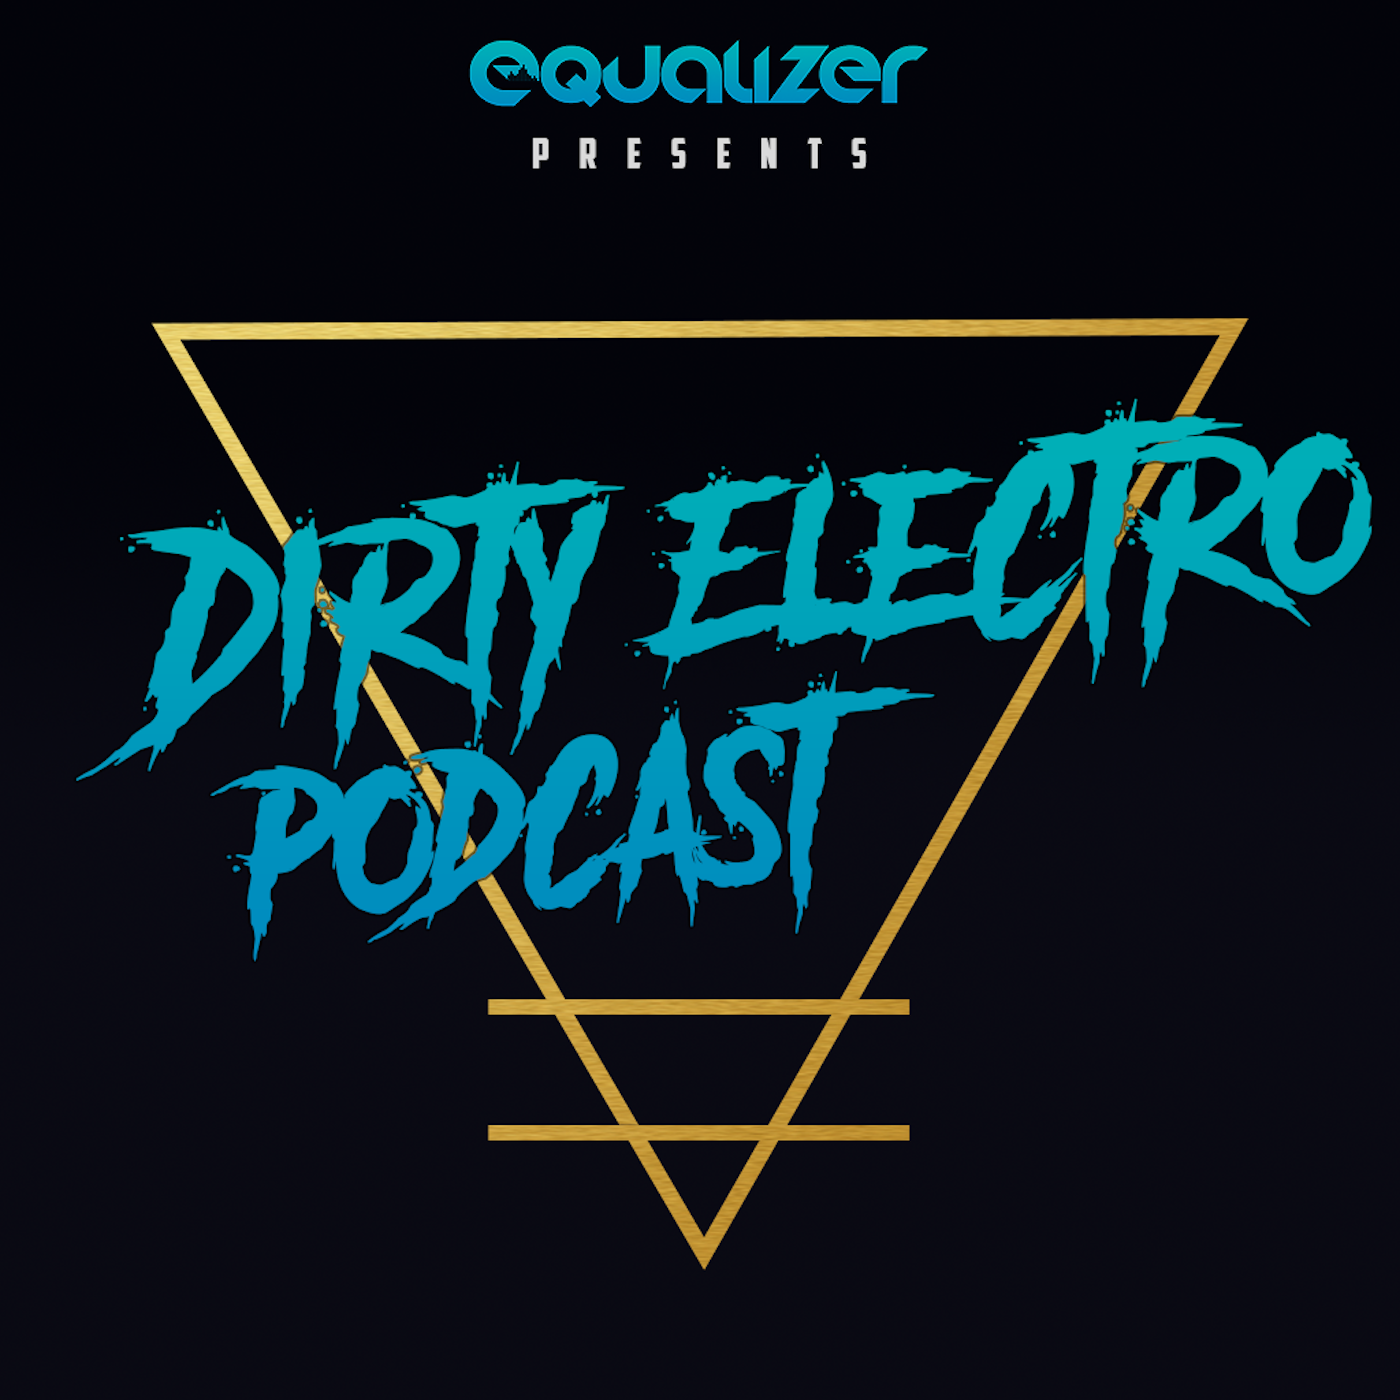 Dirty Electro Podcast